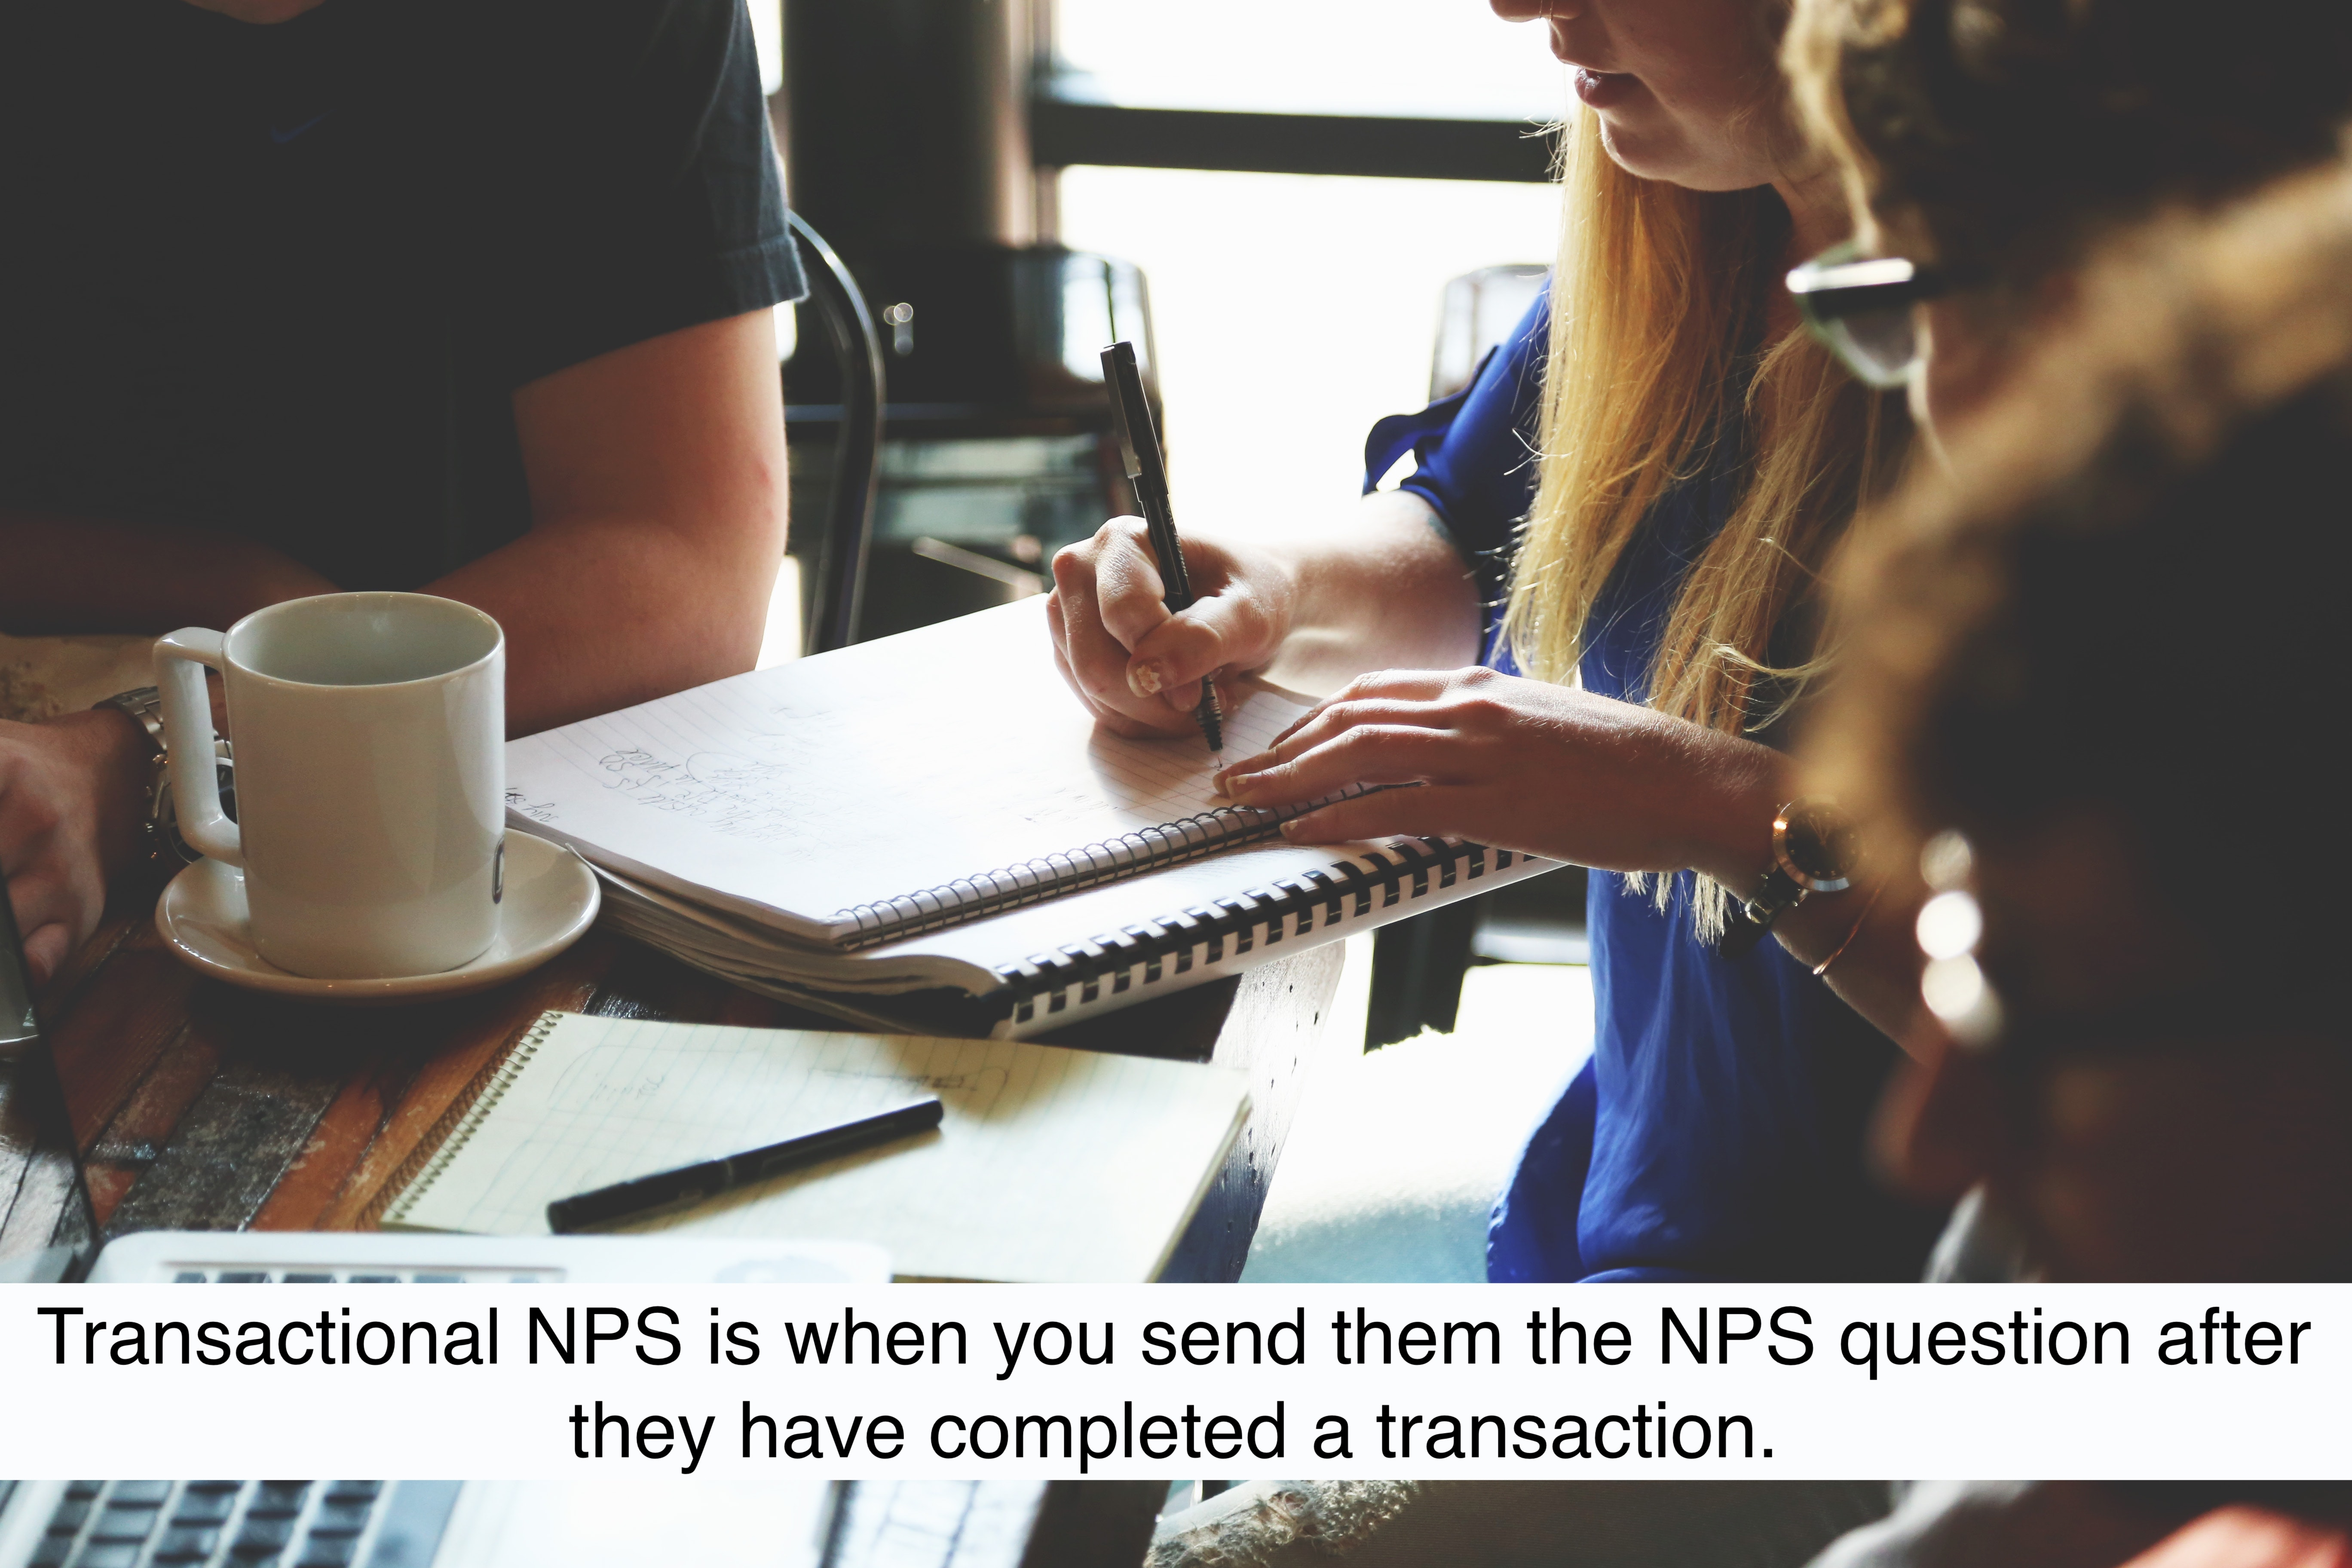 Transactional NPS is when you send customers an NPS question after they have completed a transaction.